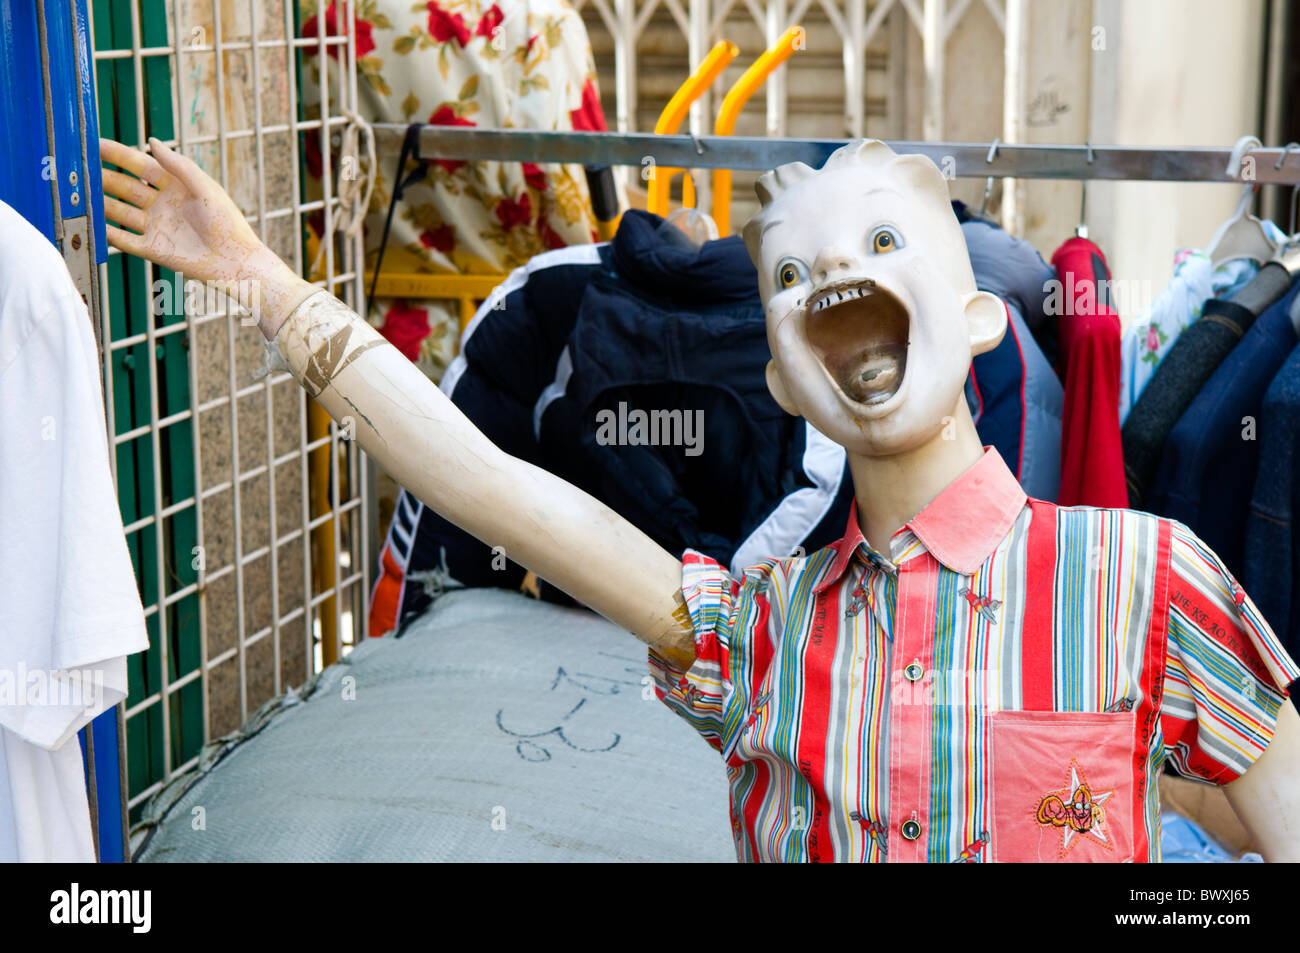 77364e443 Mannequin With Arm Outstretched Outside a Fashion Shop in Dubai - Stock  Image